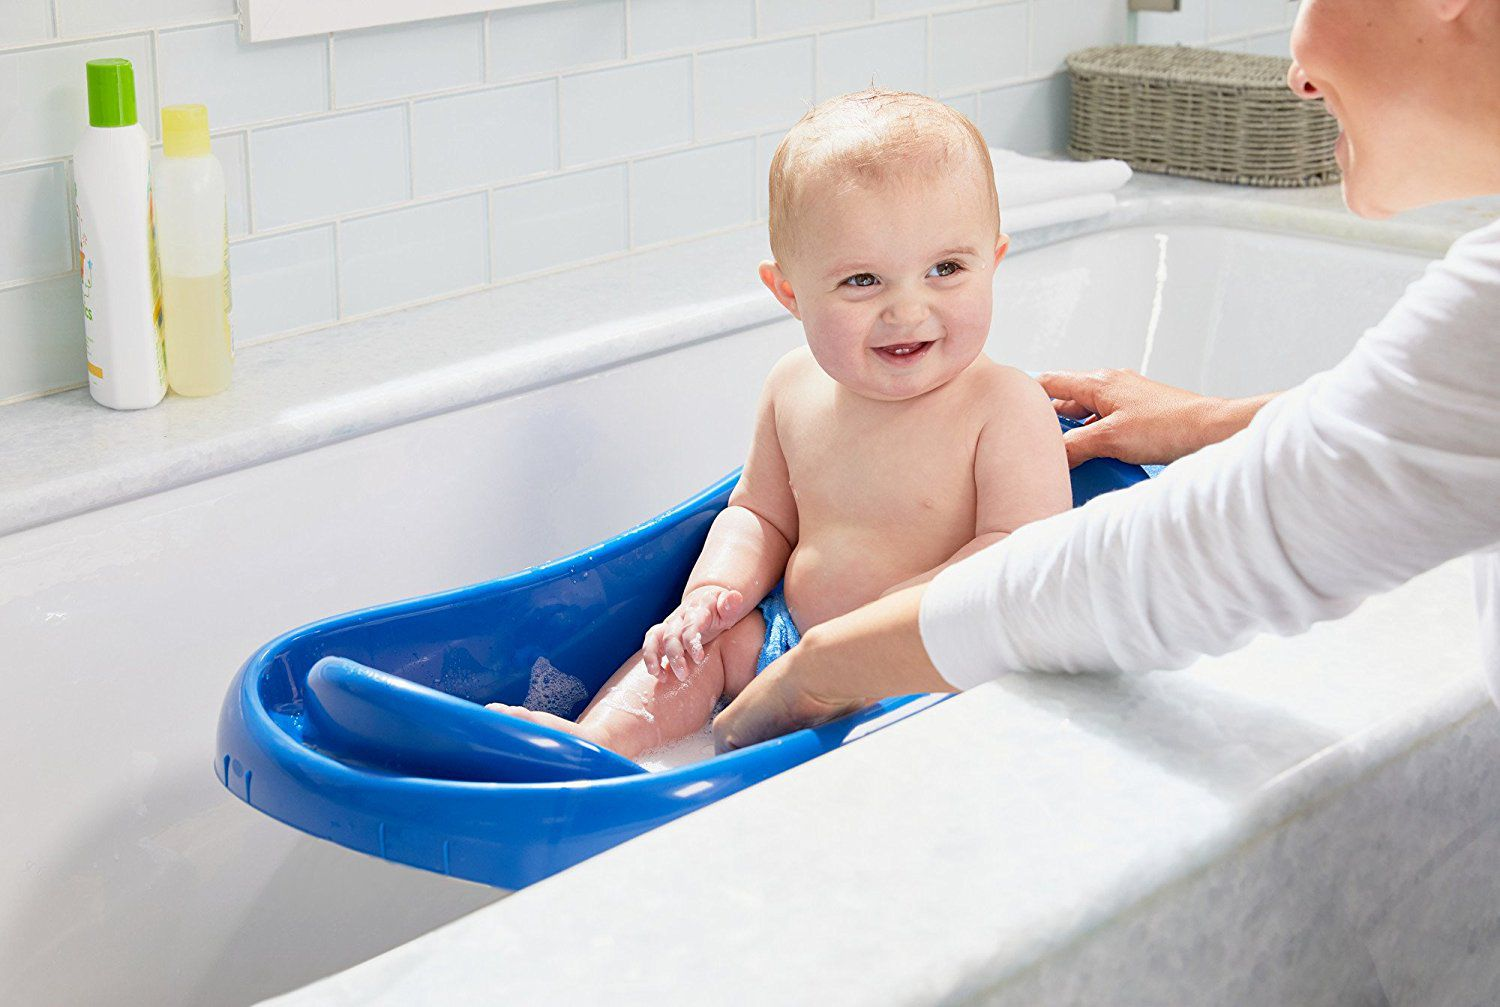 The 9 Best Baby Bathtubs to Buy in 2018